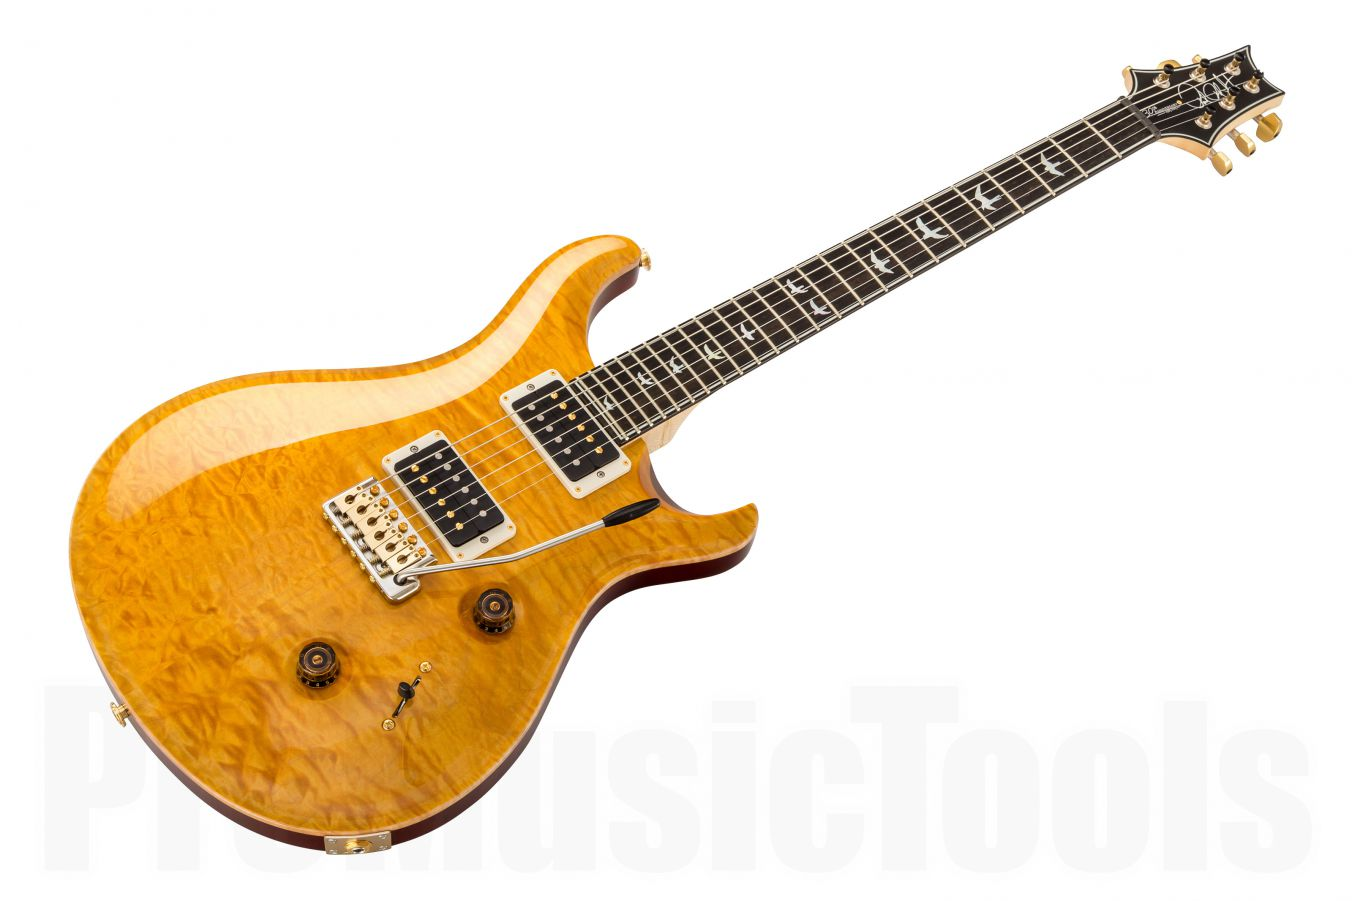 PRS USA Custom 24 10-Top Wood Library FD - Faded Vintage Yellow Quilt